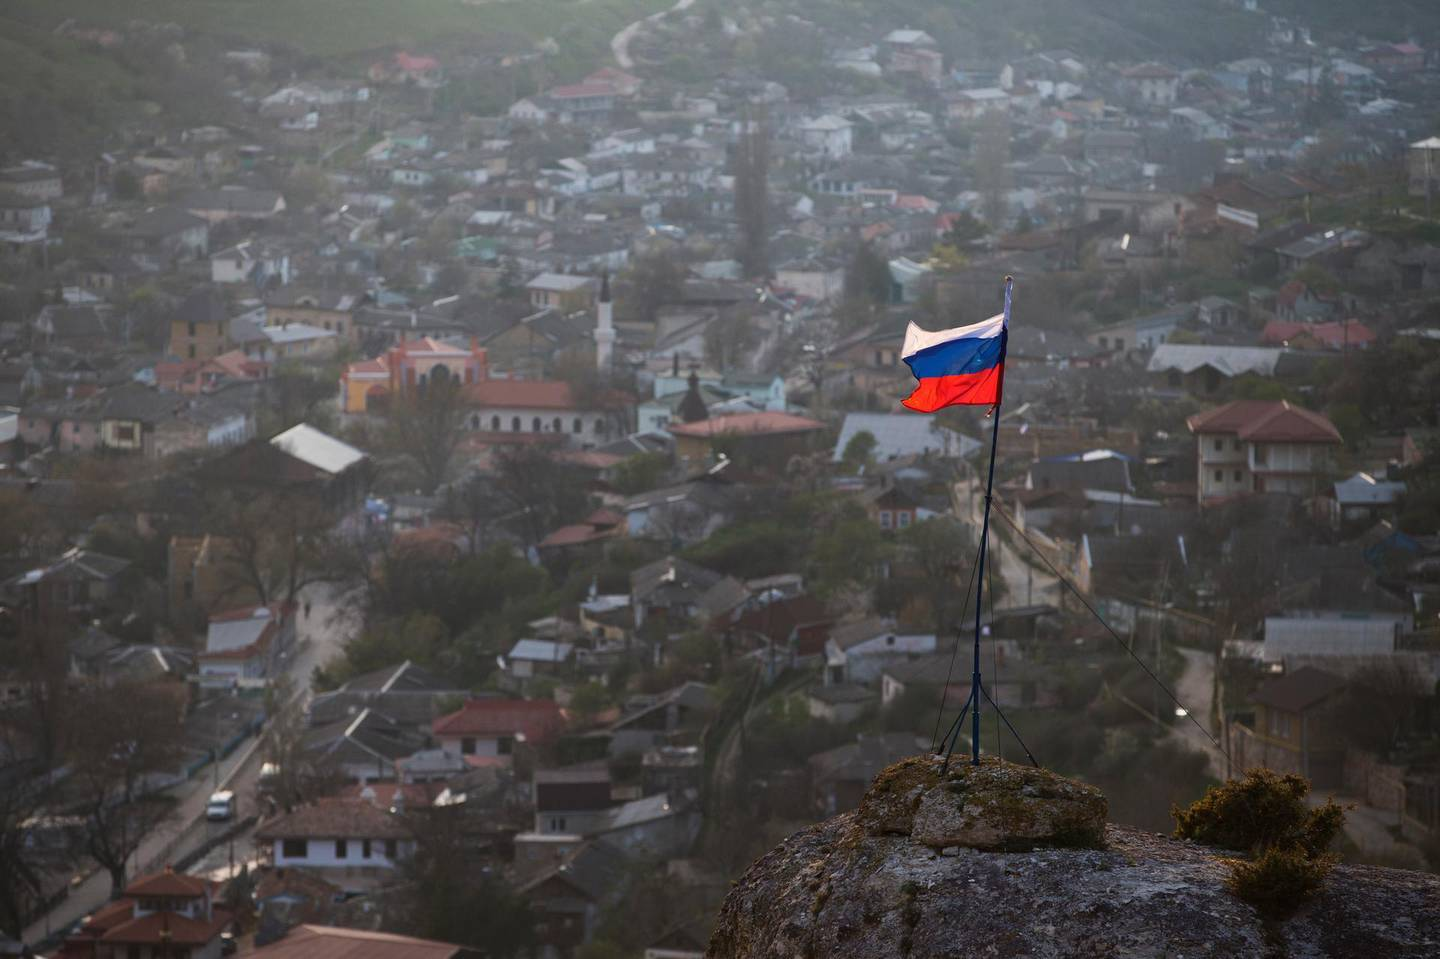 FILE - In this March 28, 2014 file photo, a Russian national flag flies on a hilltop near the city of Bakhchysarai, Crimea. The European Court of Human Rights decided Thursday Jan. 14, 2021, to start considering Ukraine's complaint against alleged human rights violations in the Russia-annexed Crimea. (AP Photo/Pavel Golovkin, File)